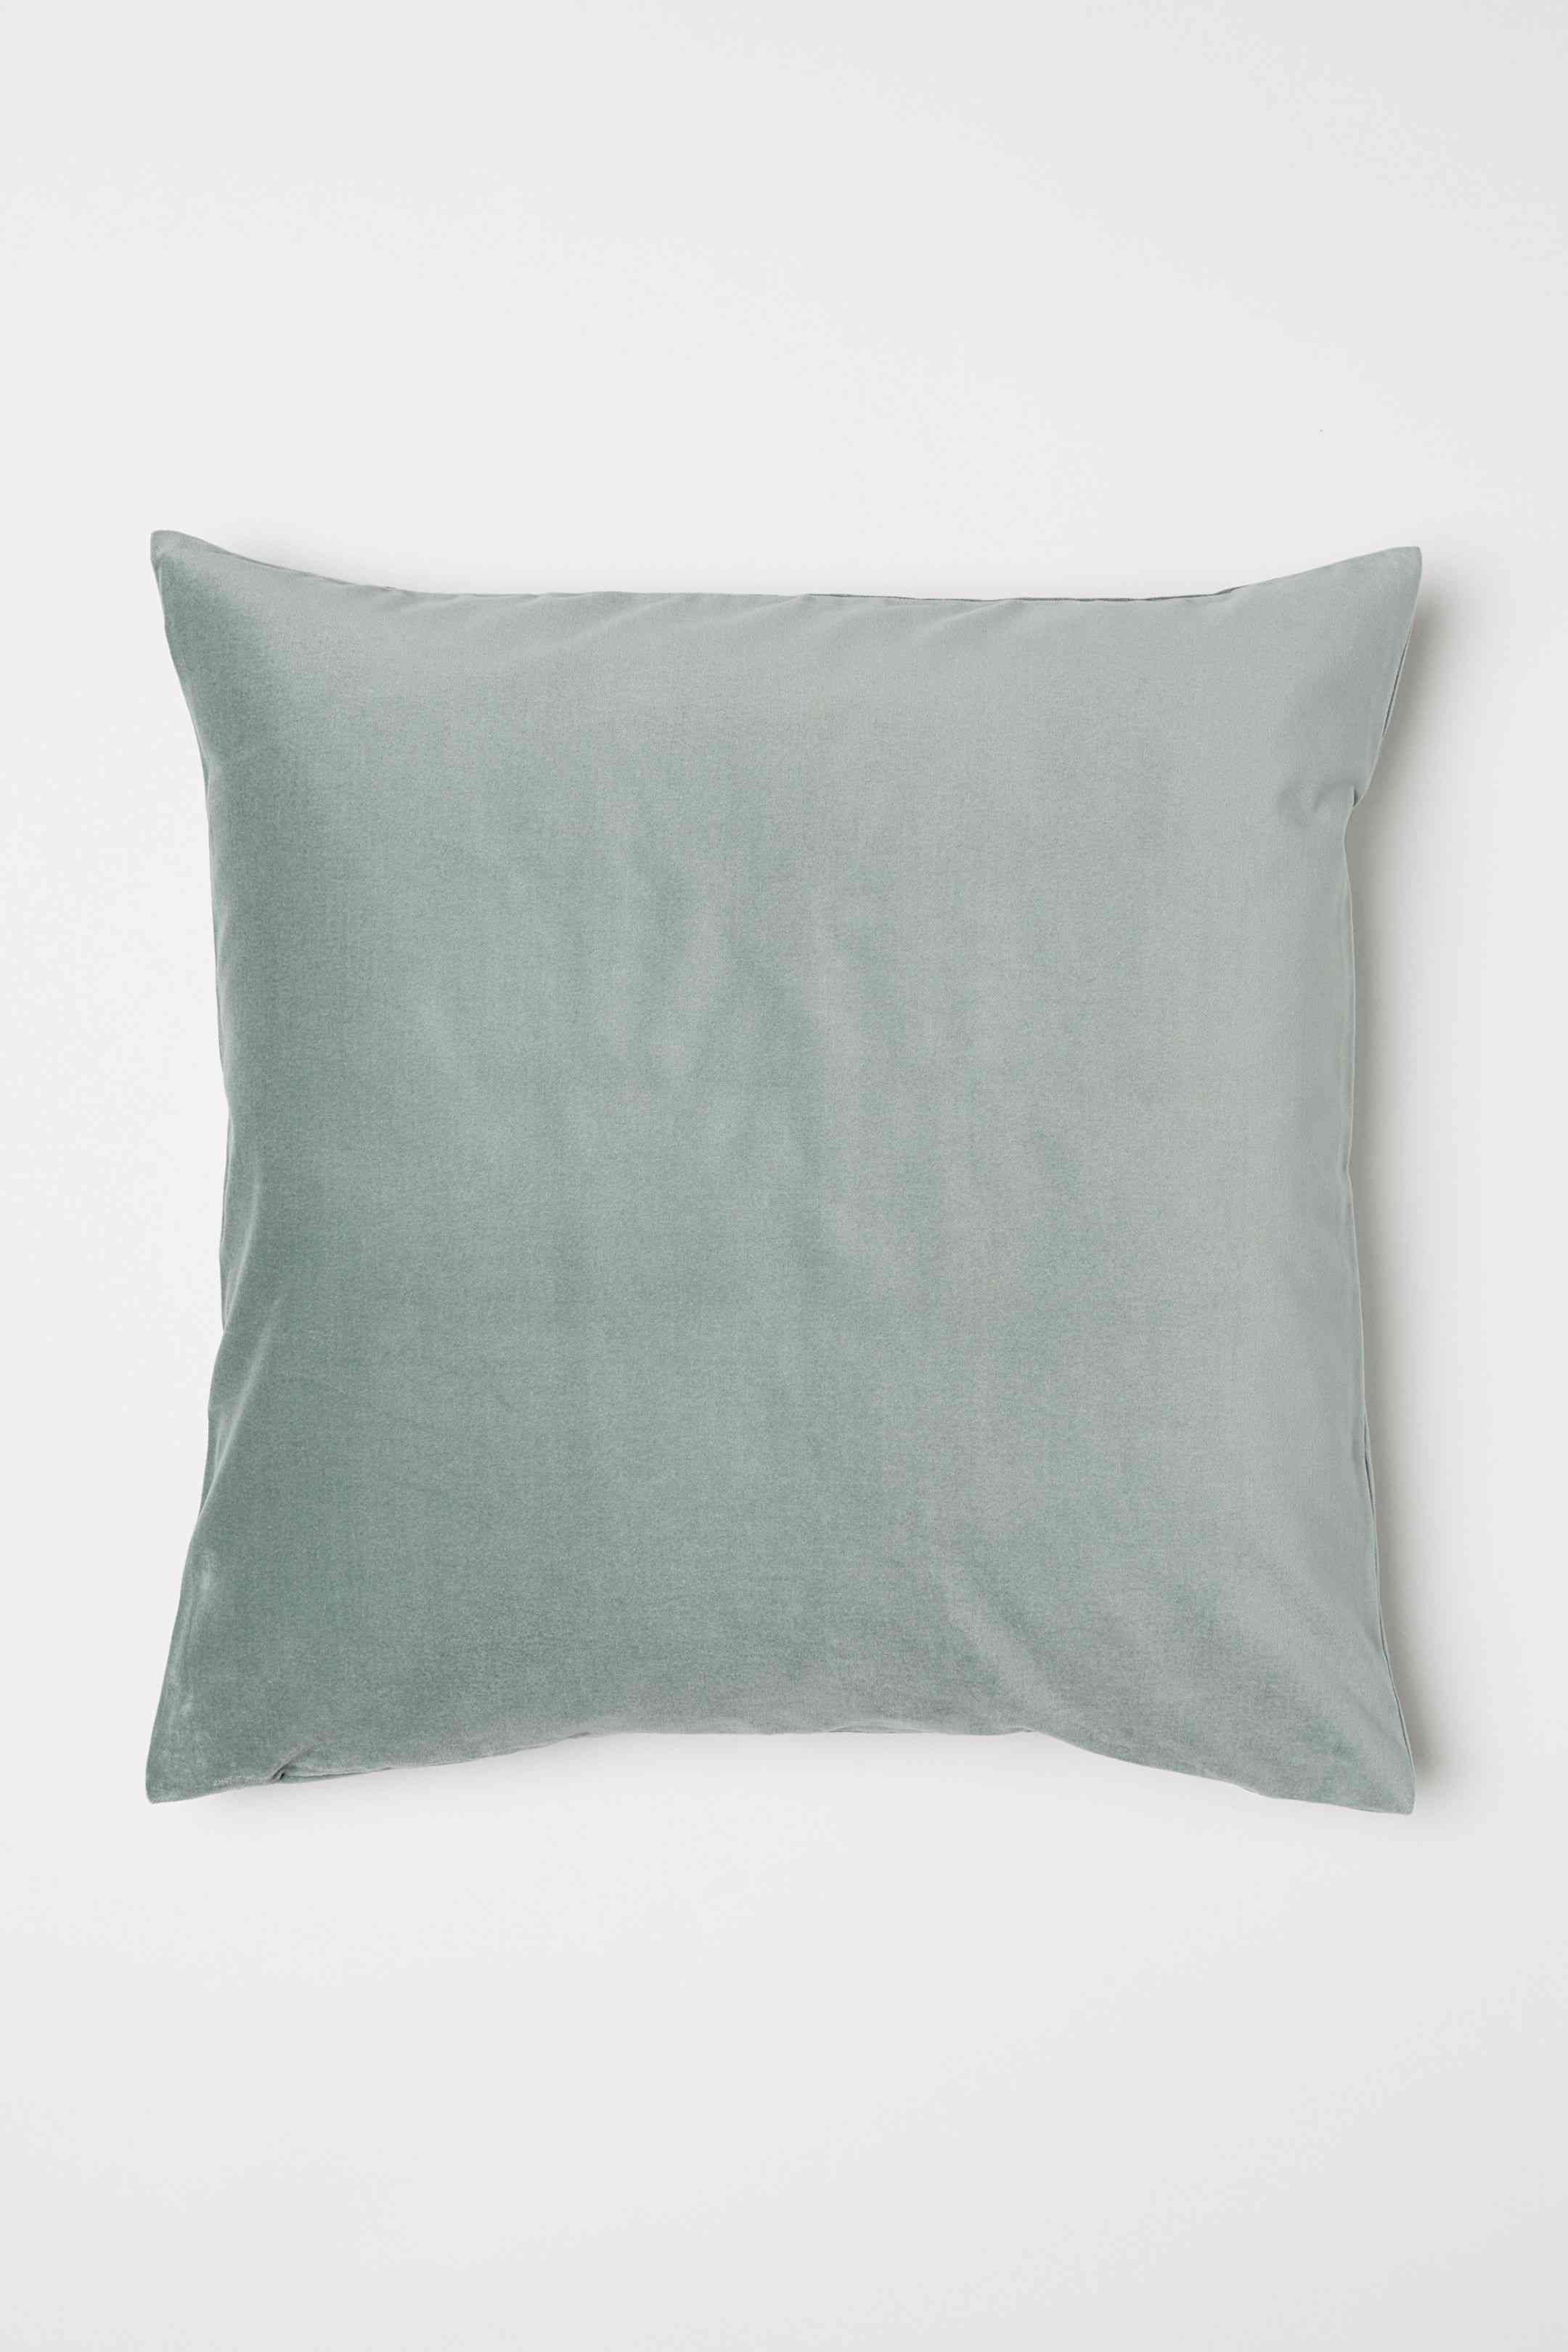 Cotton Velvet Cushion Cover in Dusky Green